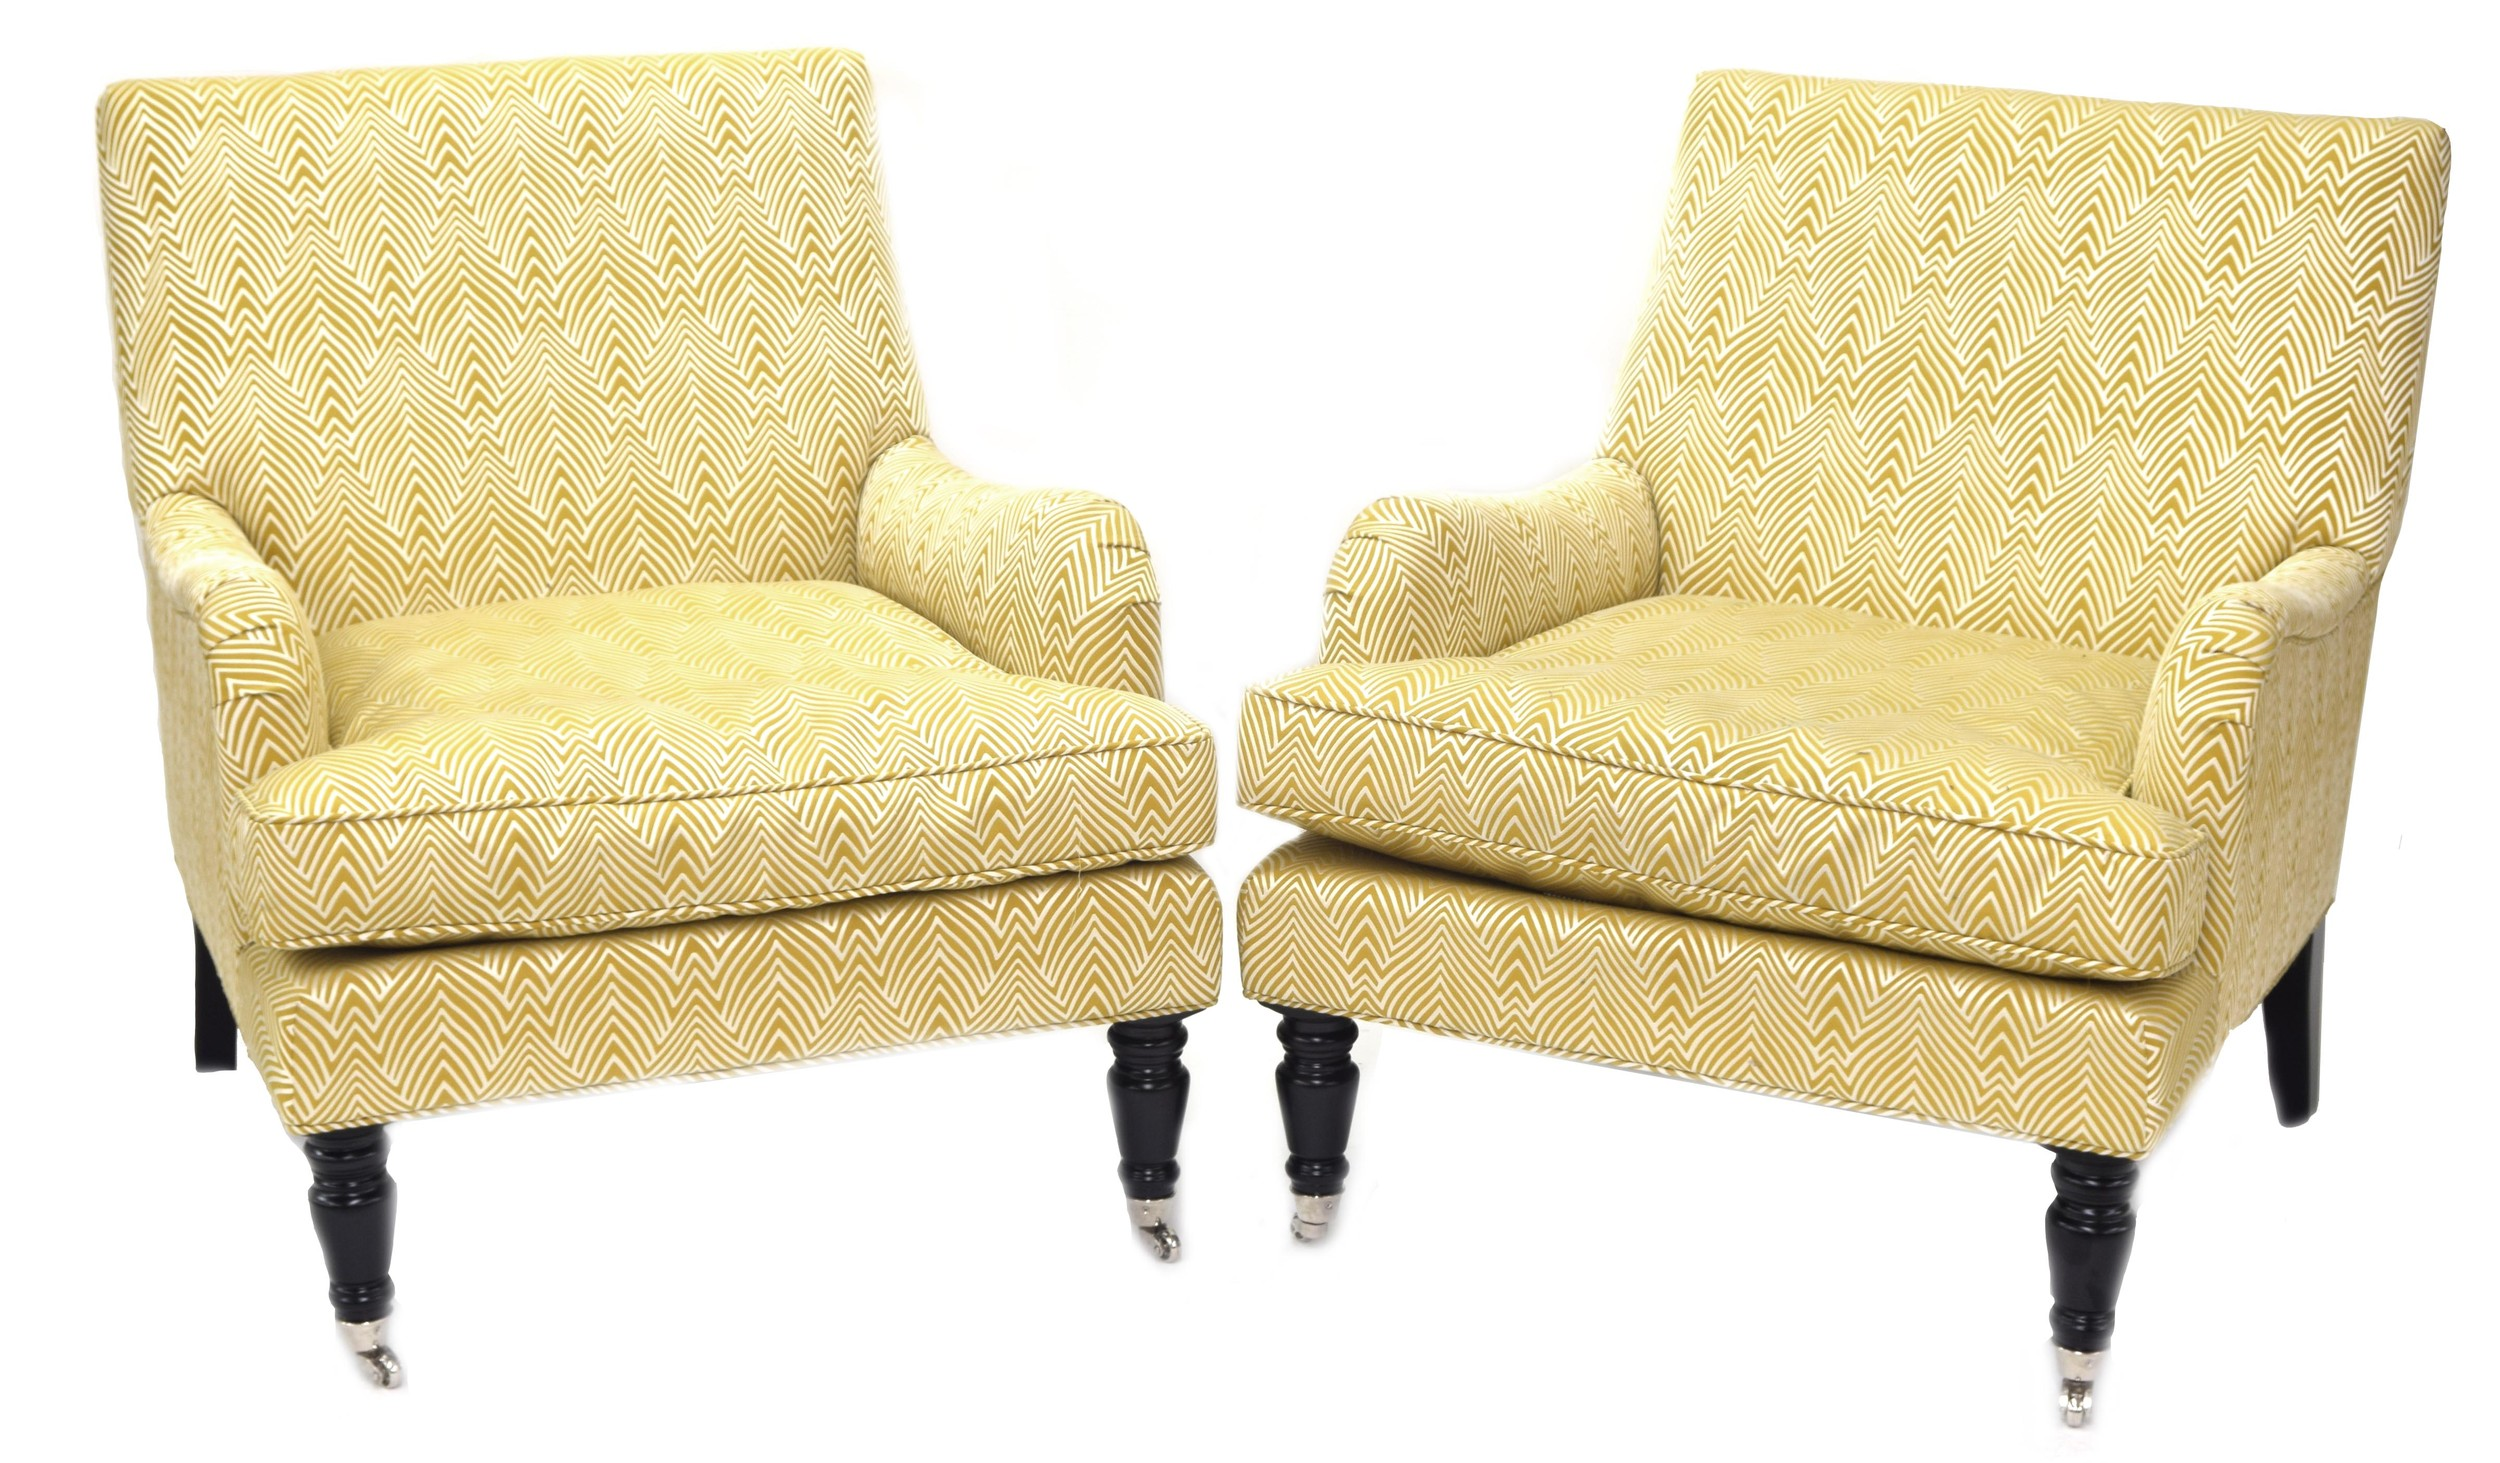 Good pair of India Jane Windsor Plume pale yellow feather pattern upholstered easy chairs, upon